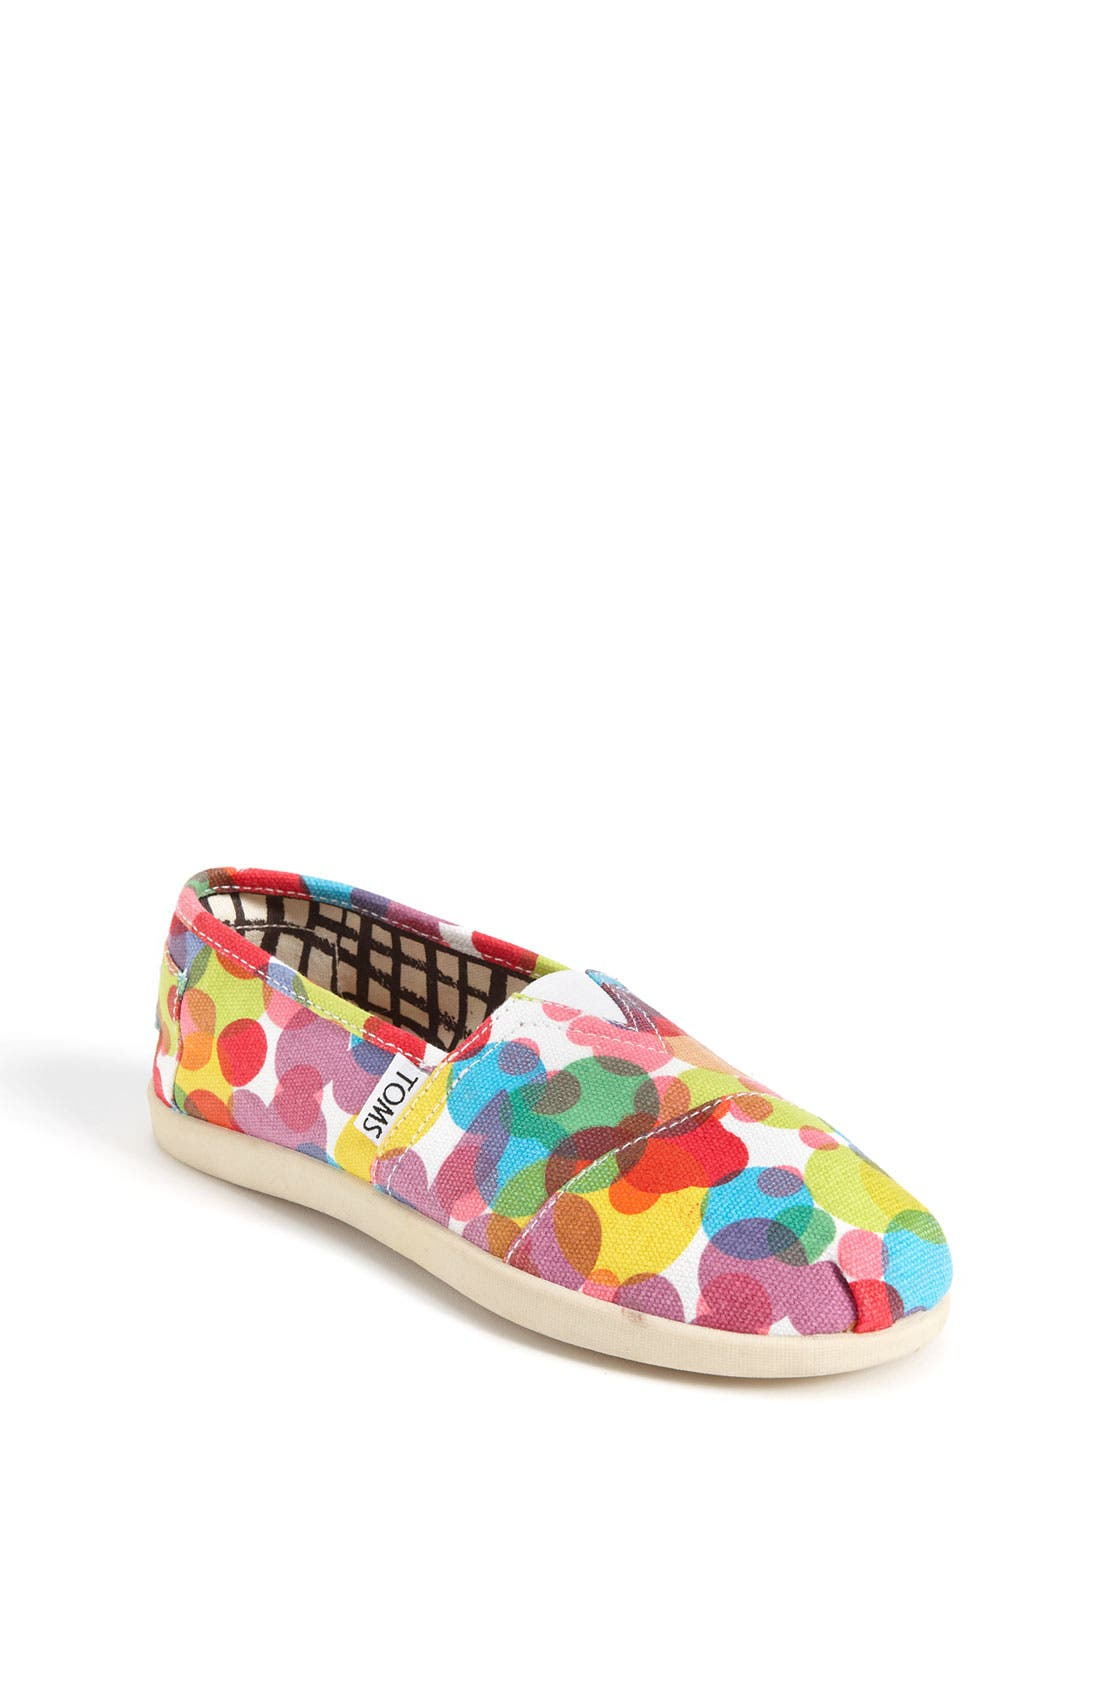 Alternate Image 1 Selected - TOMS 'Clea - Youth' Canvas Slip-On (Toddler, Little Kid & Big Kid)